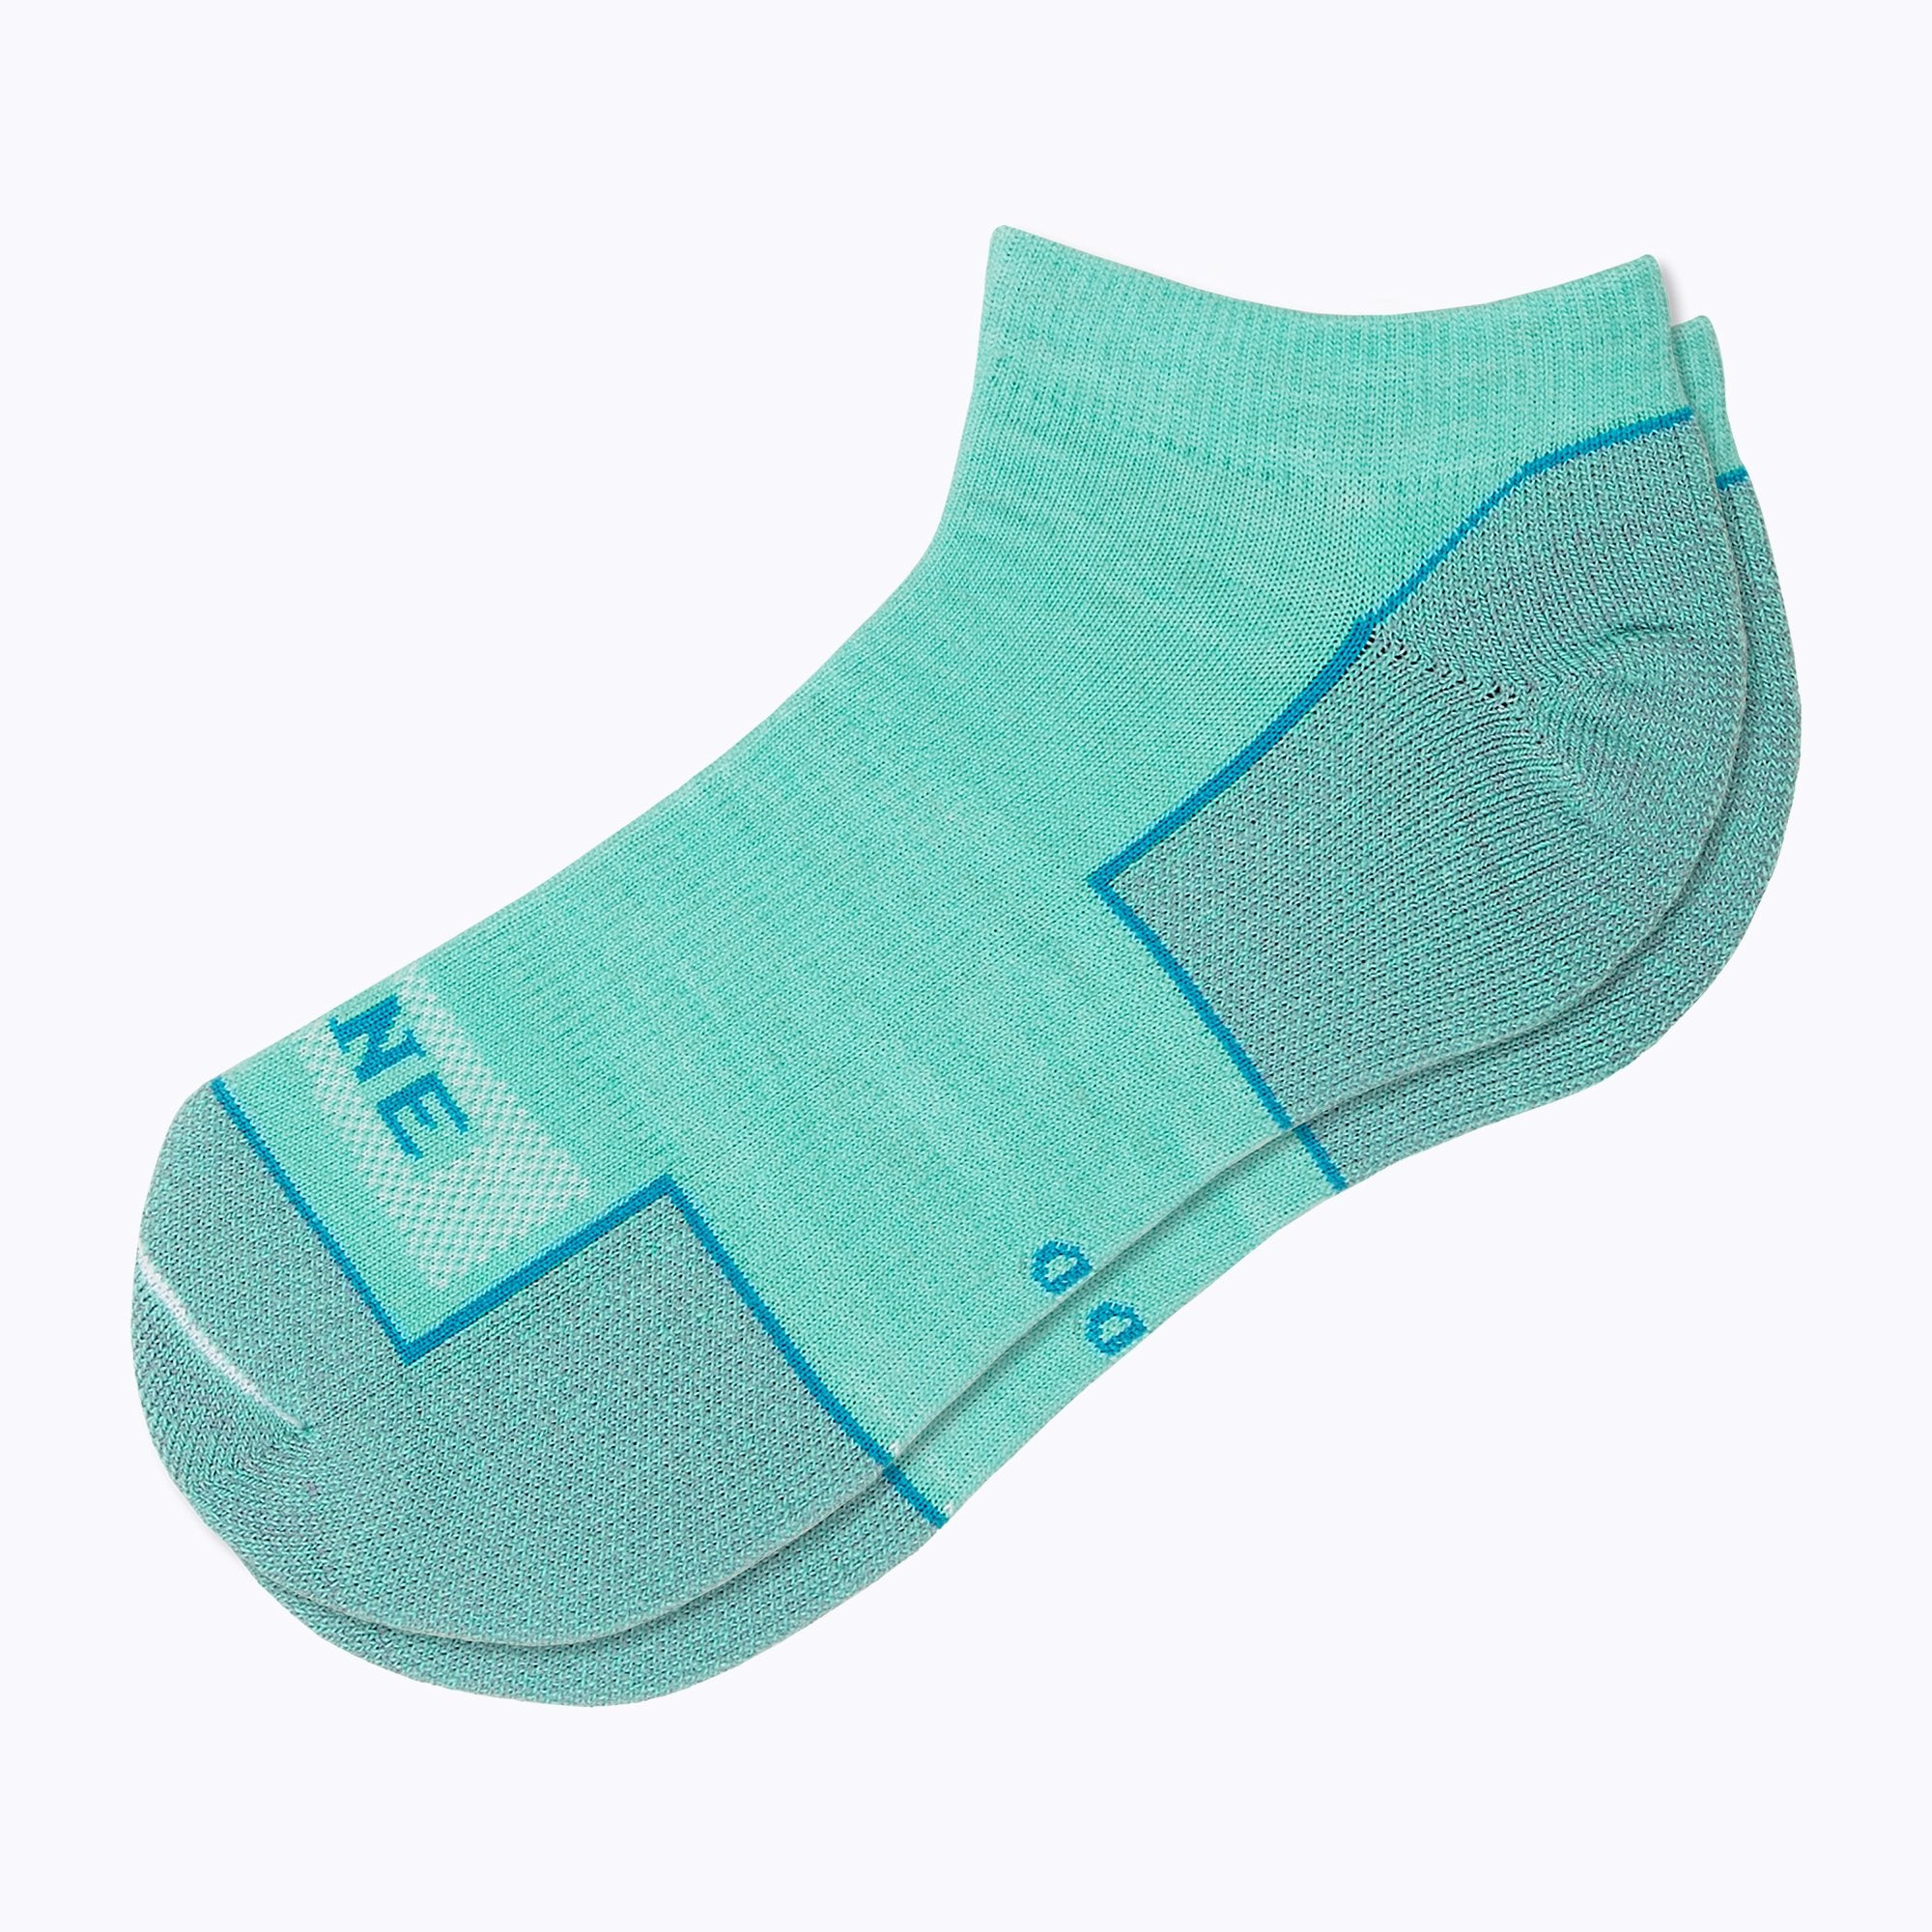 Everyday Women's Ankle Socks - Turq by Canyon x Lane Socks